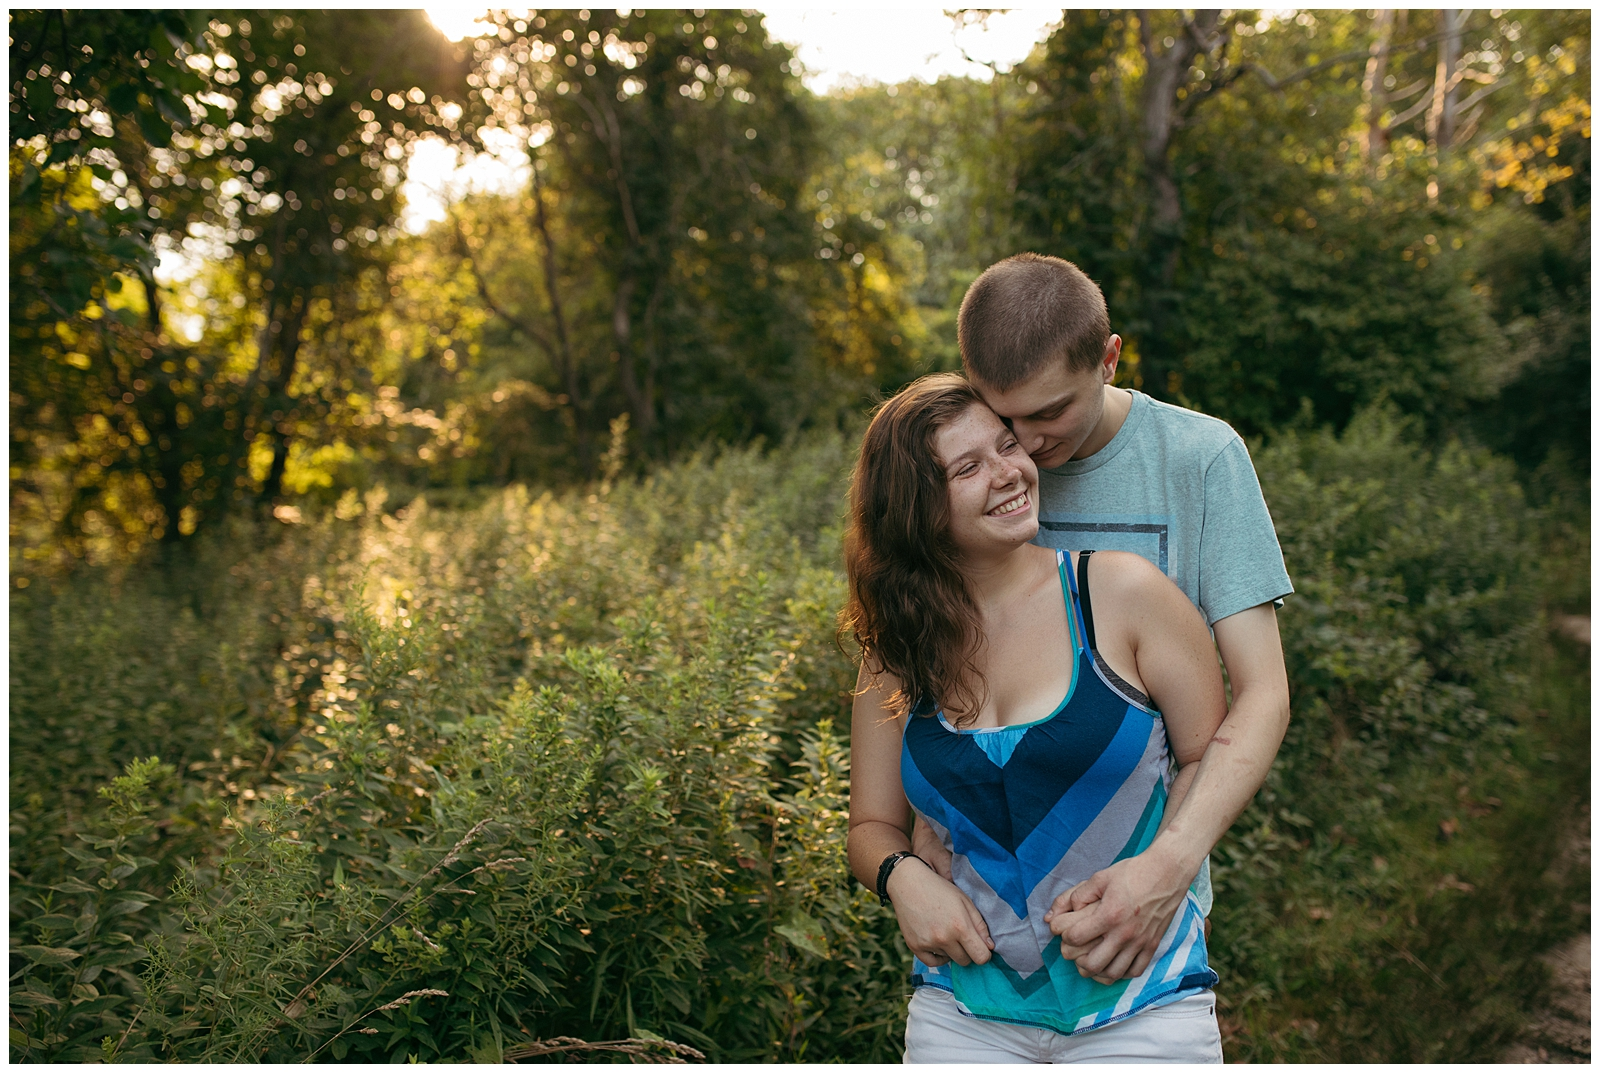 Block-Island-Engagement-Session-Bailey-Q-Photo-Boston-Wedding-Photographer-003.jpg